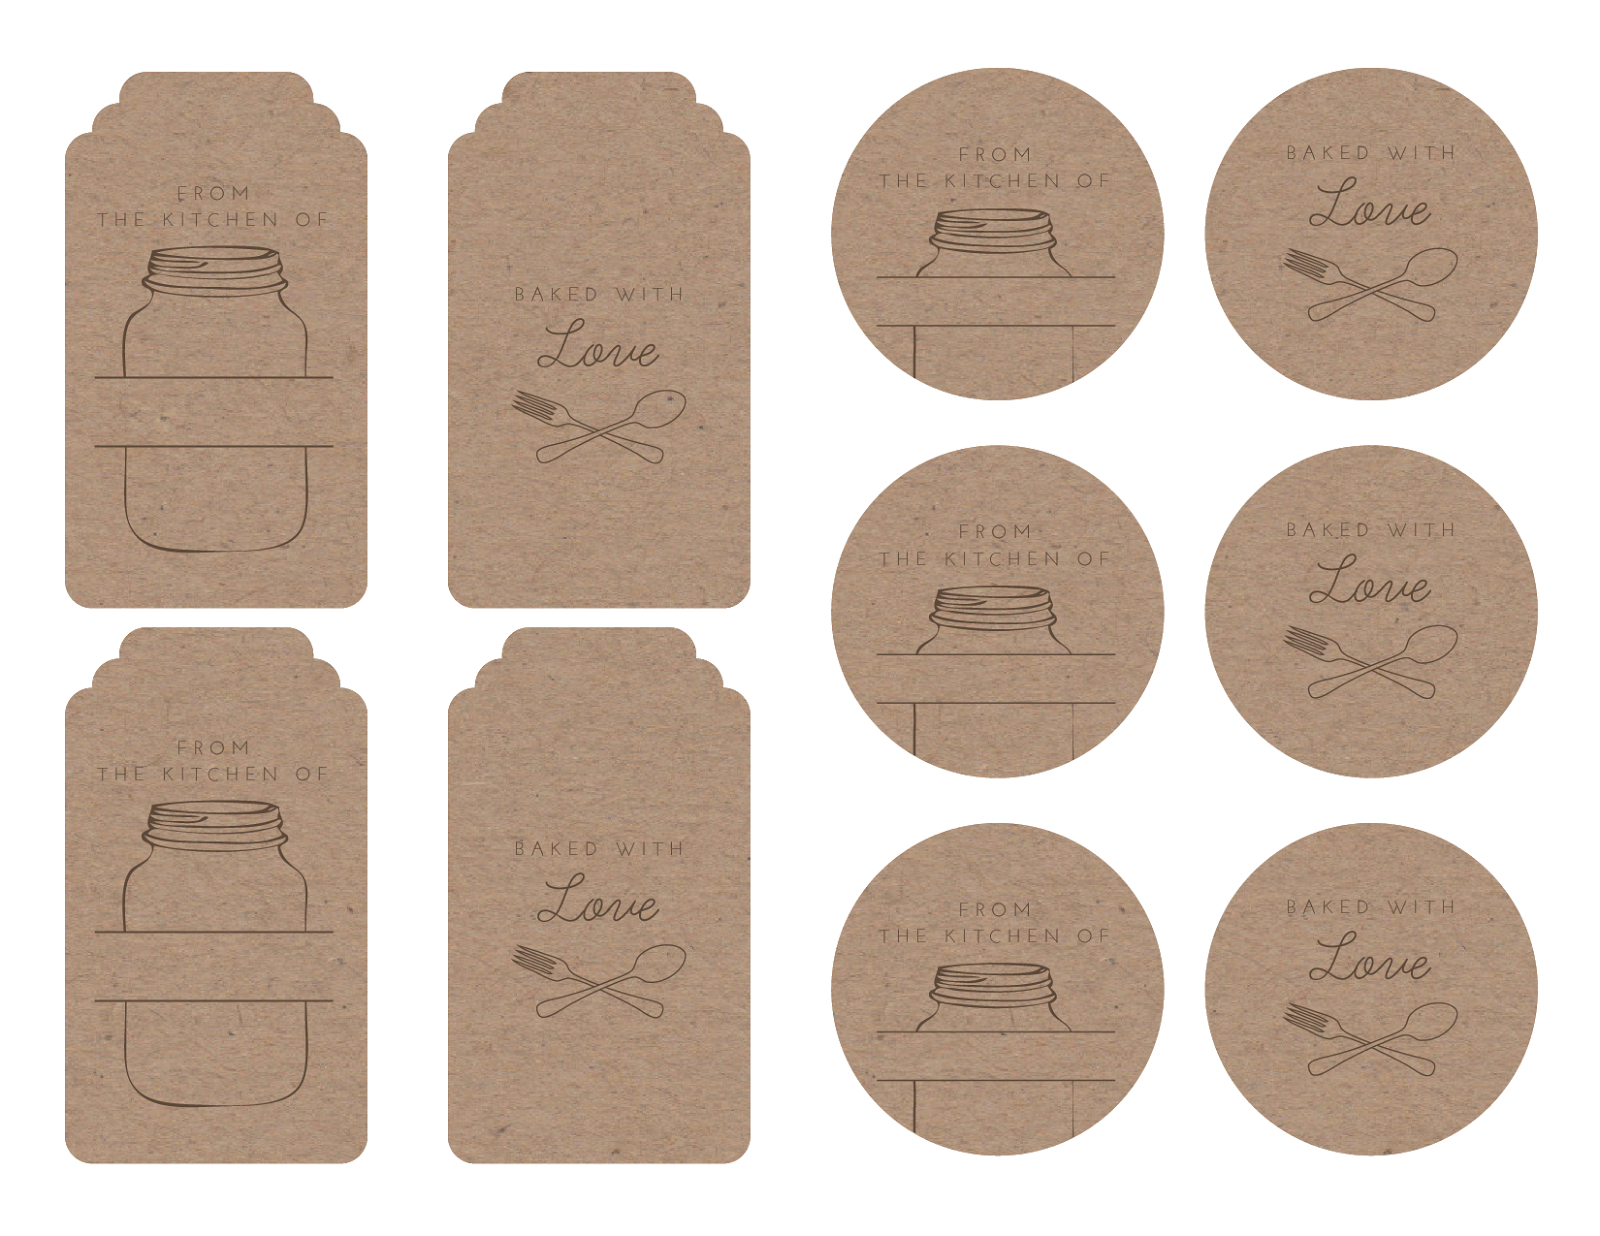 Homemade Tags For Your Baked Goods   Printables & Graphics   Bake - Free Printable Baking Labels